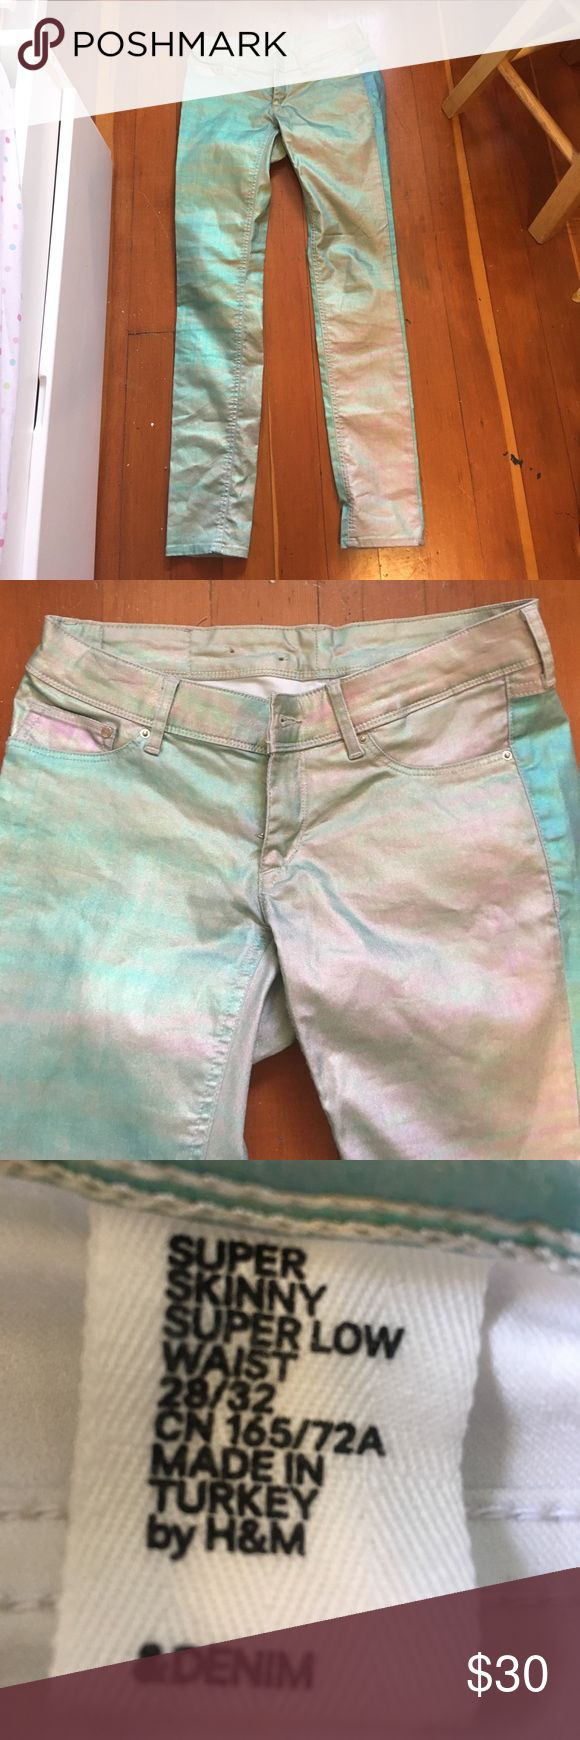 Holographic jeans Holographic Jeans Skinny